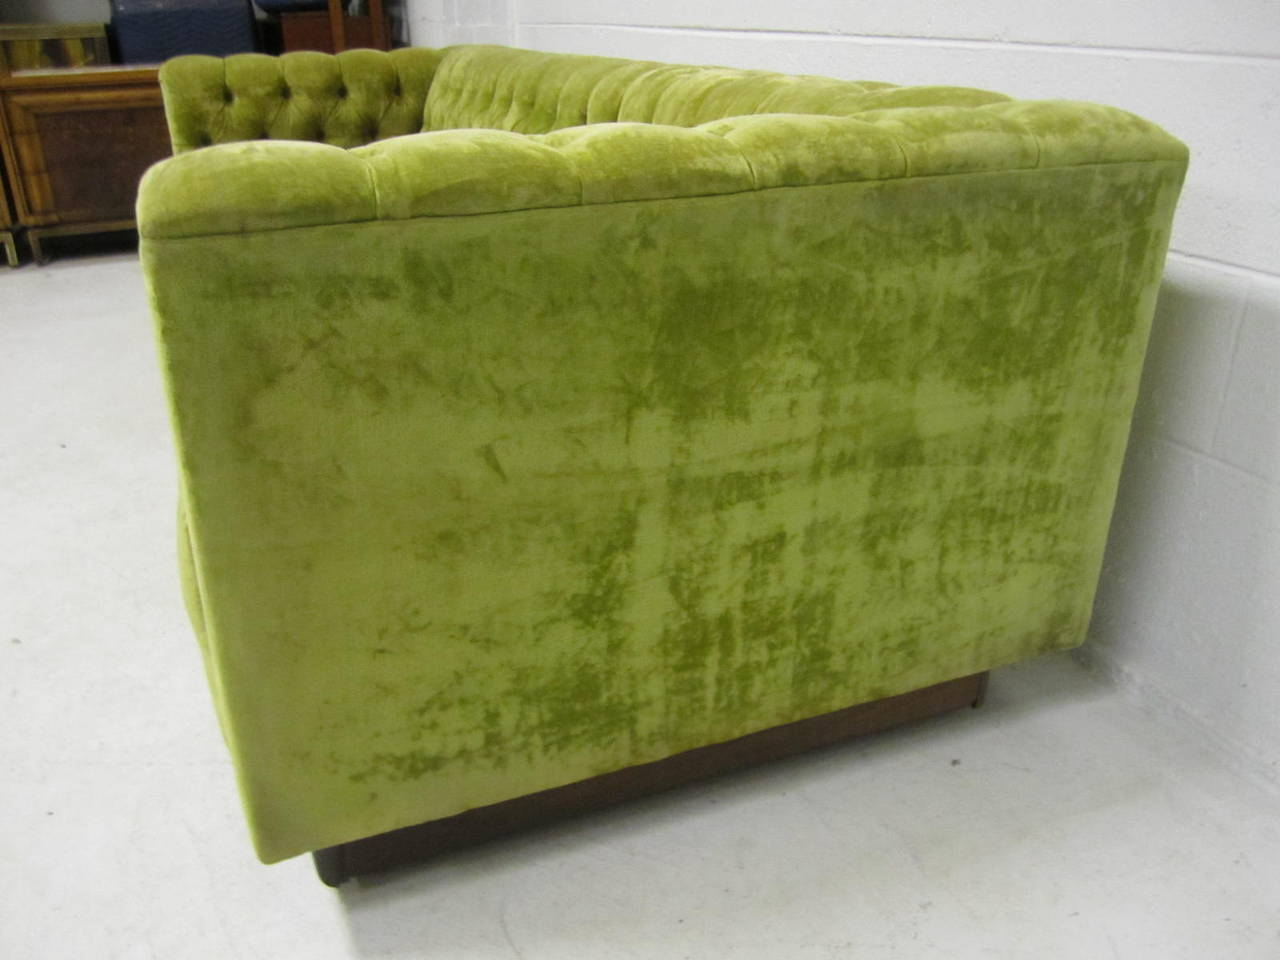 Awesome dunbar style chesterfield tufted sofa mid century for Decor jewelry chesterfield